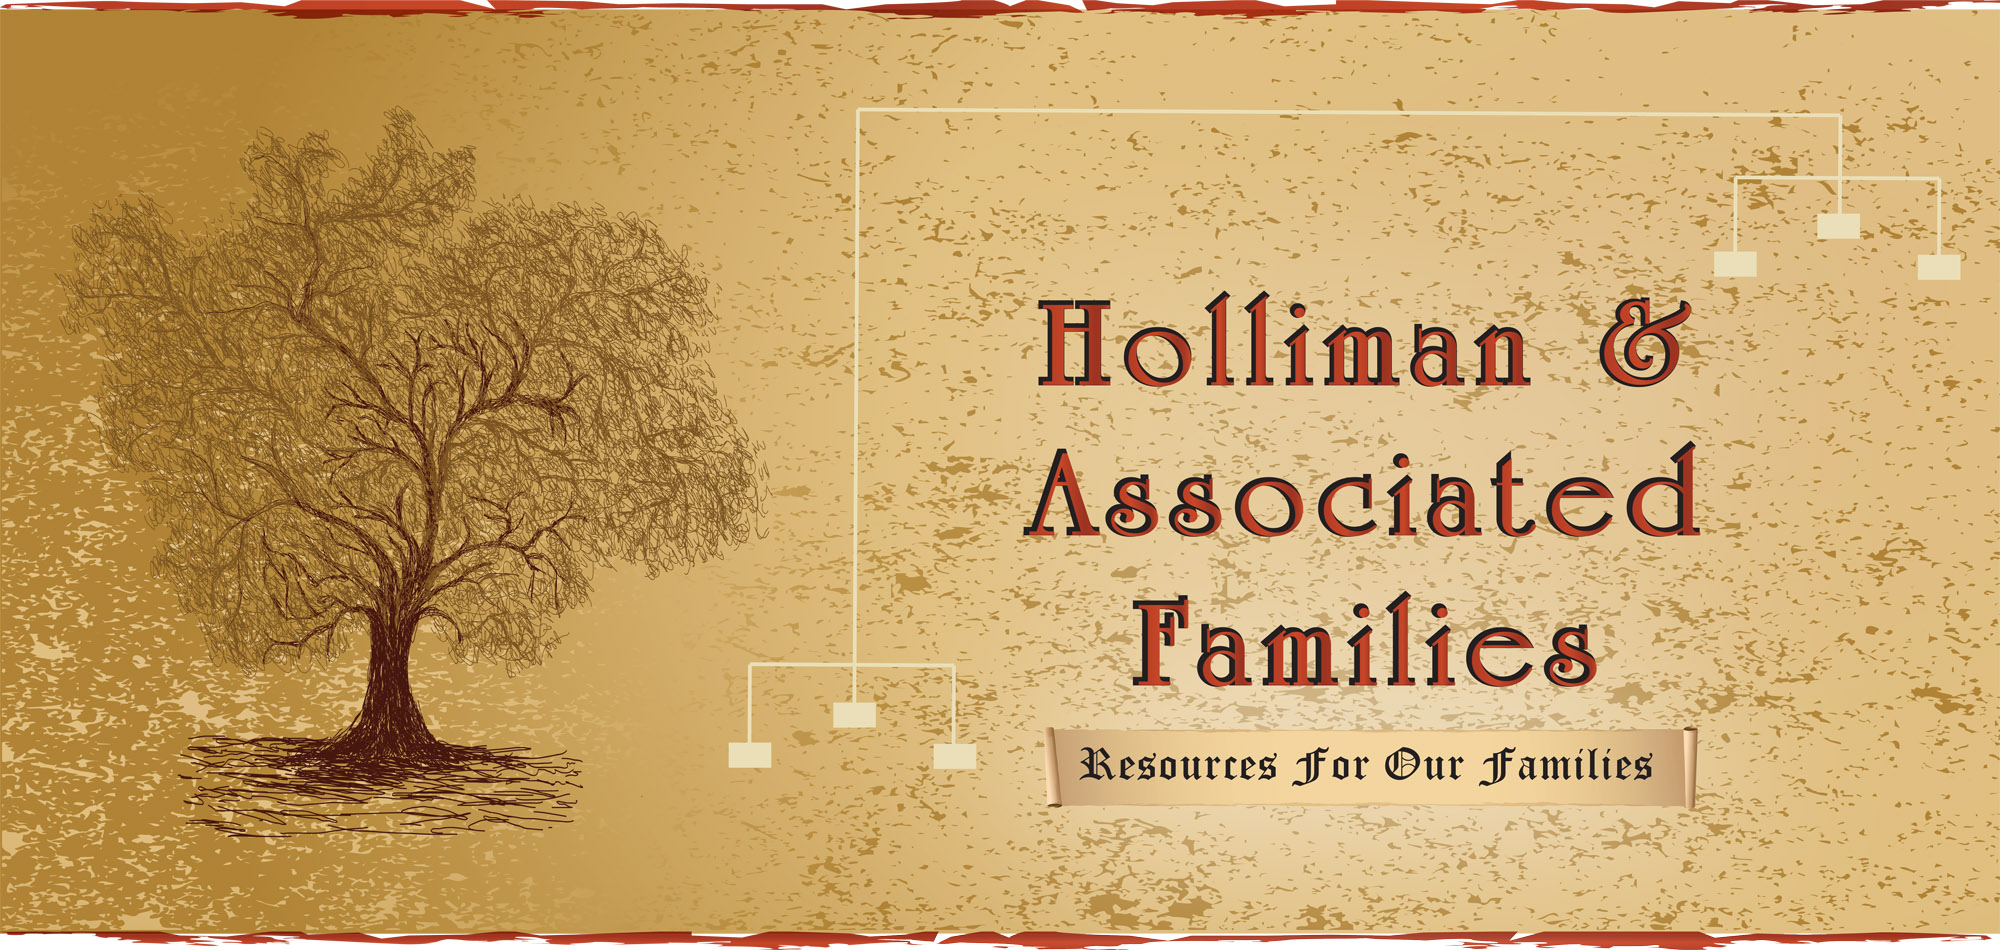 Holliman and Associated Families